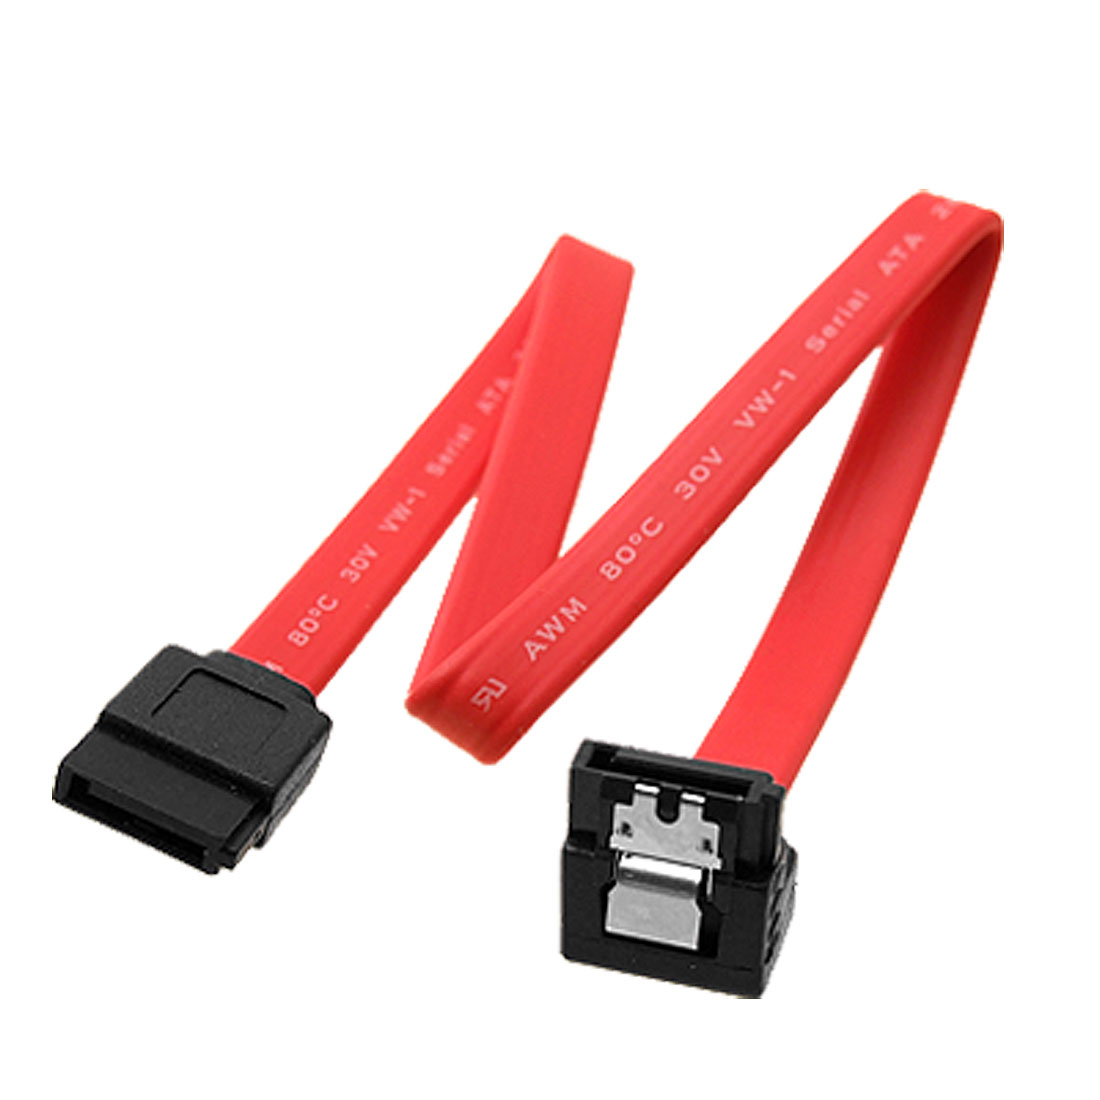 Serial ATA SATA 7 Pin (F) Right Angle to 7 Pin (F) Straight Extension Cable Red